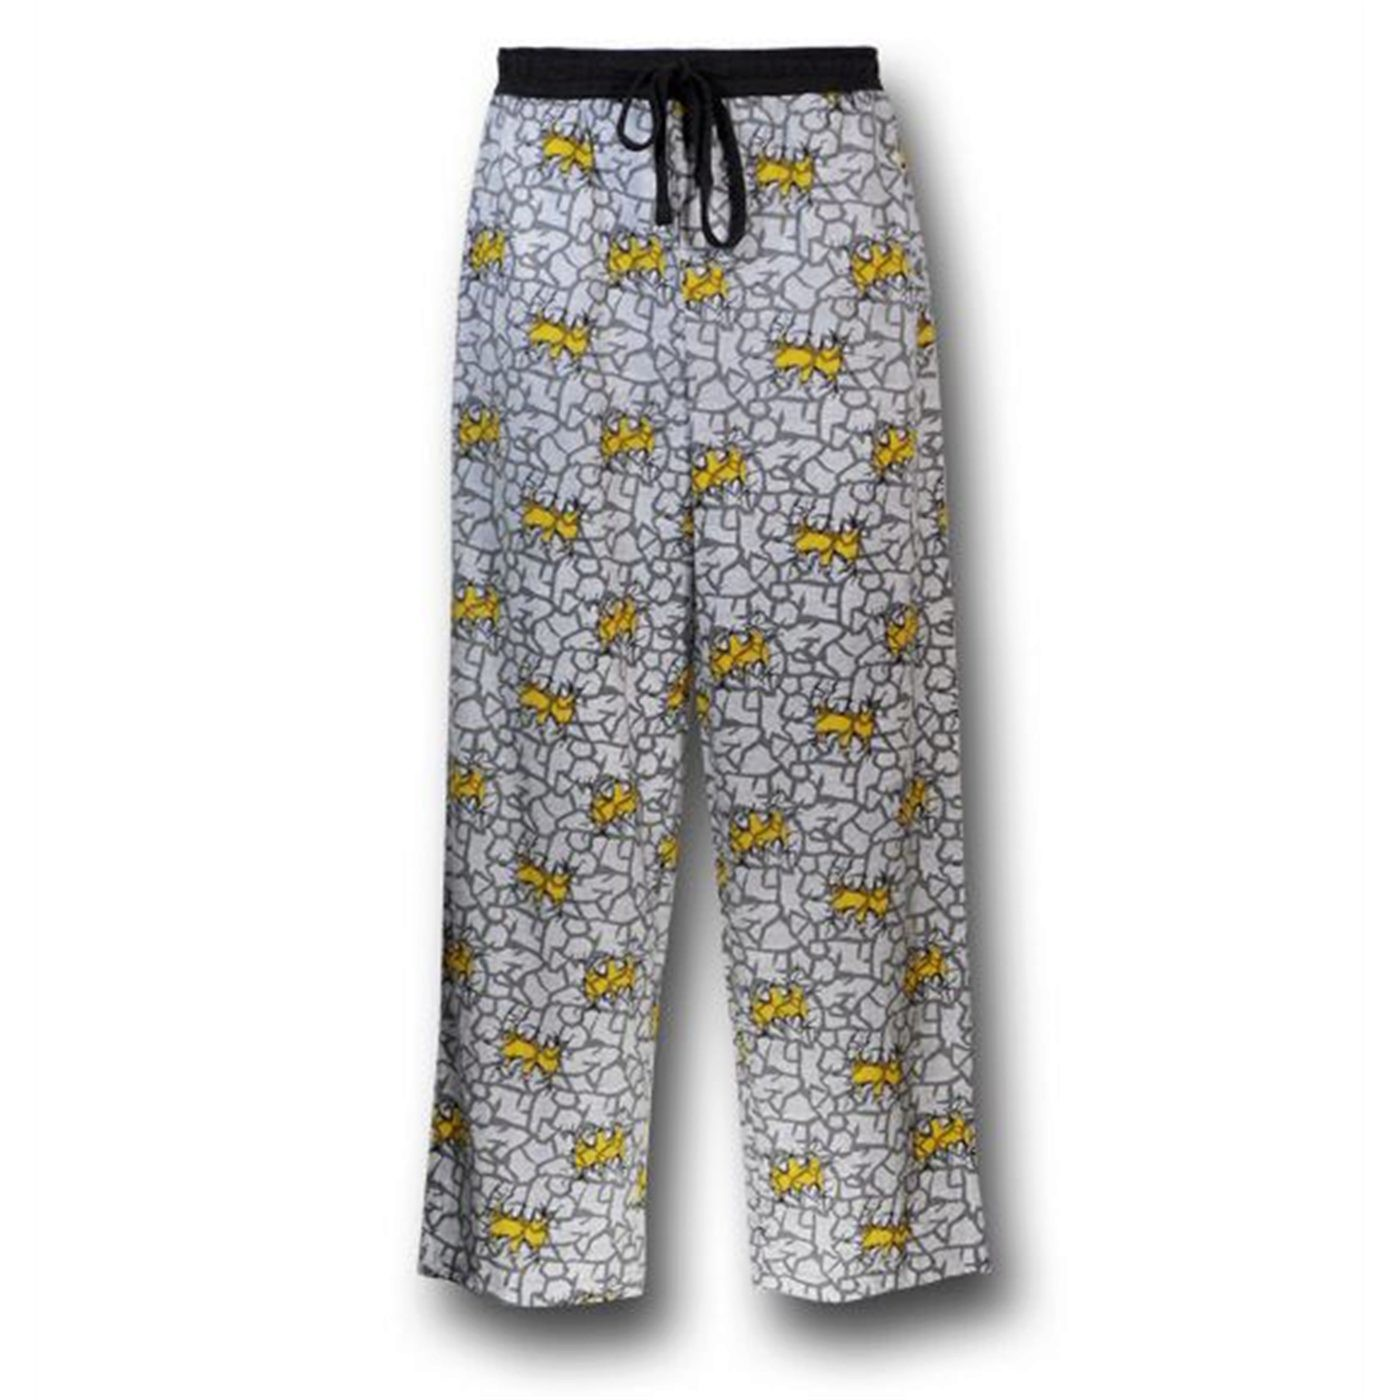 Batman Grey and Yellow Pajama Pants